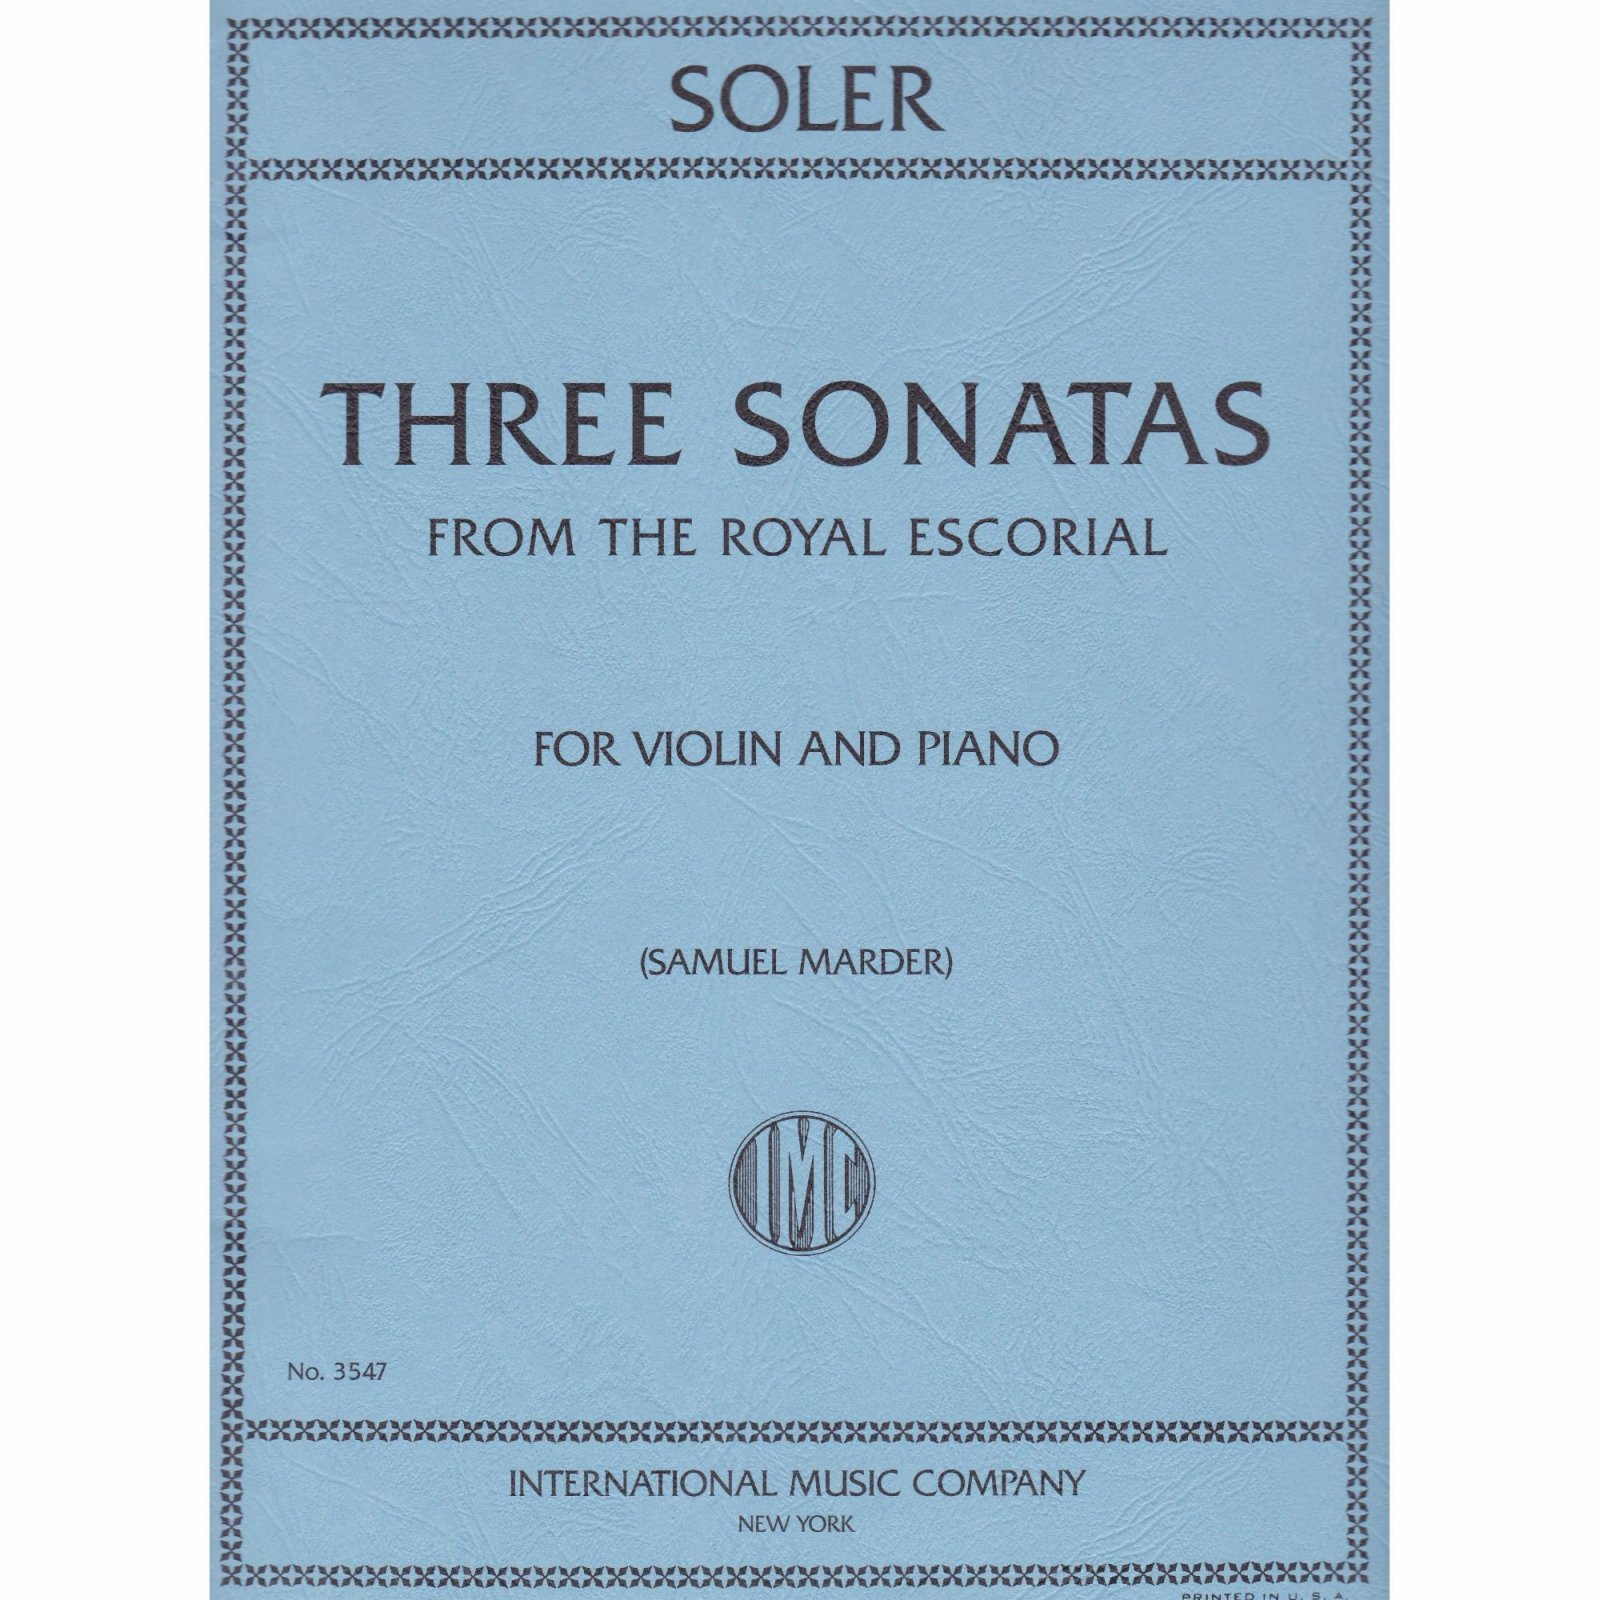 Soler: Three Sonatas From The Royal Escorial Ed. Marder